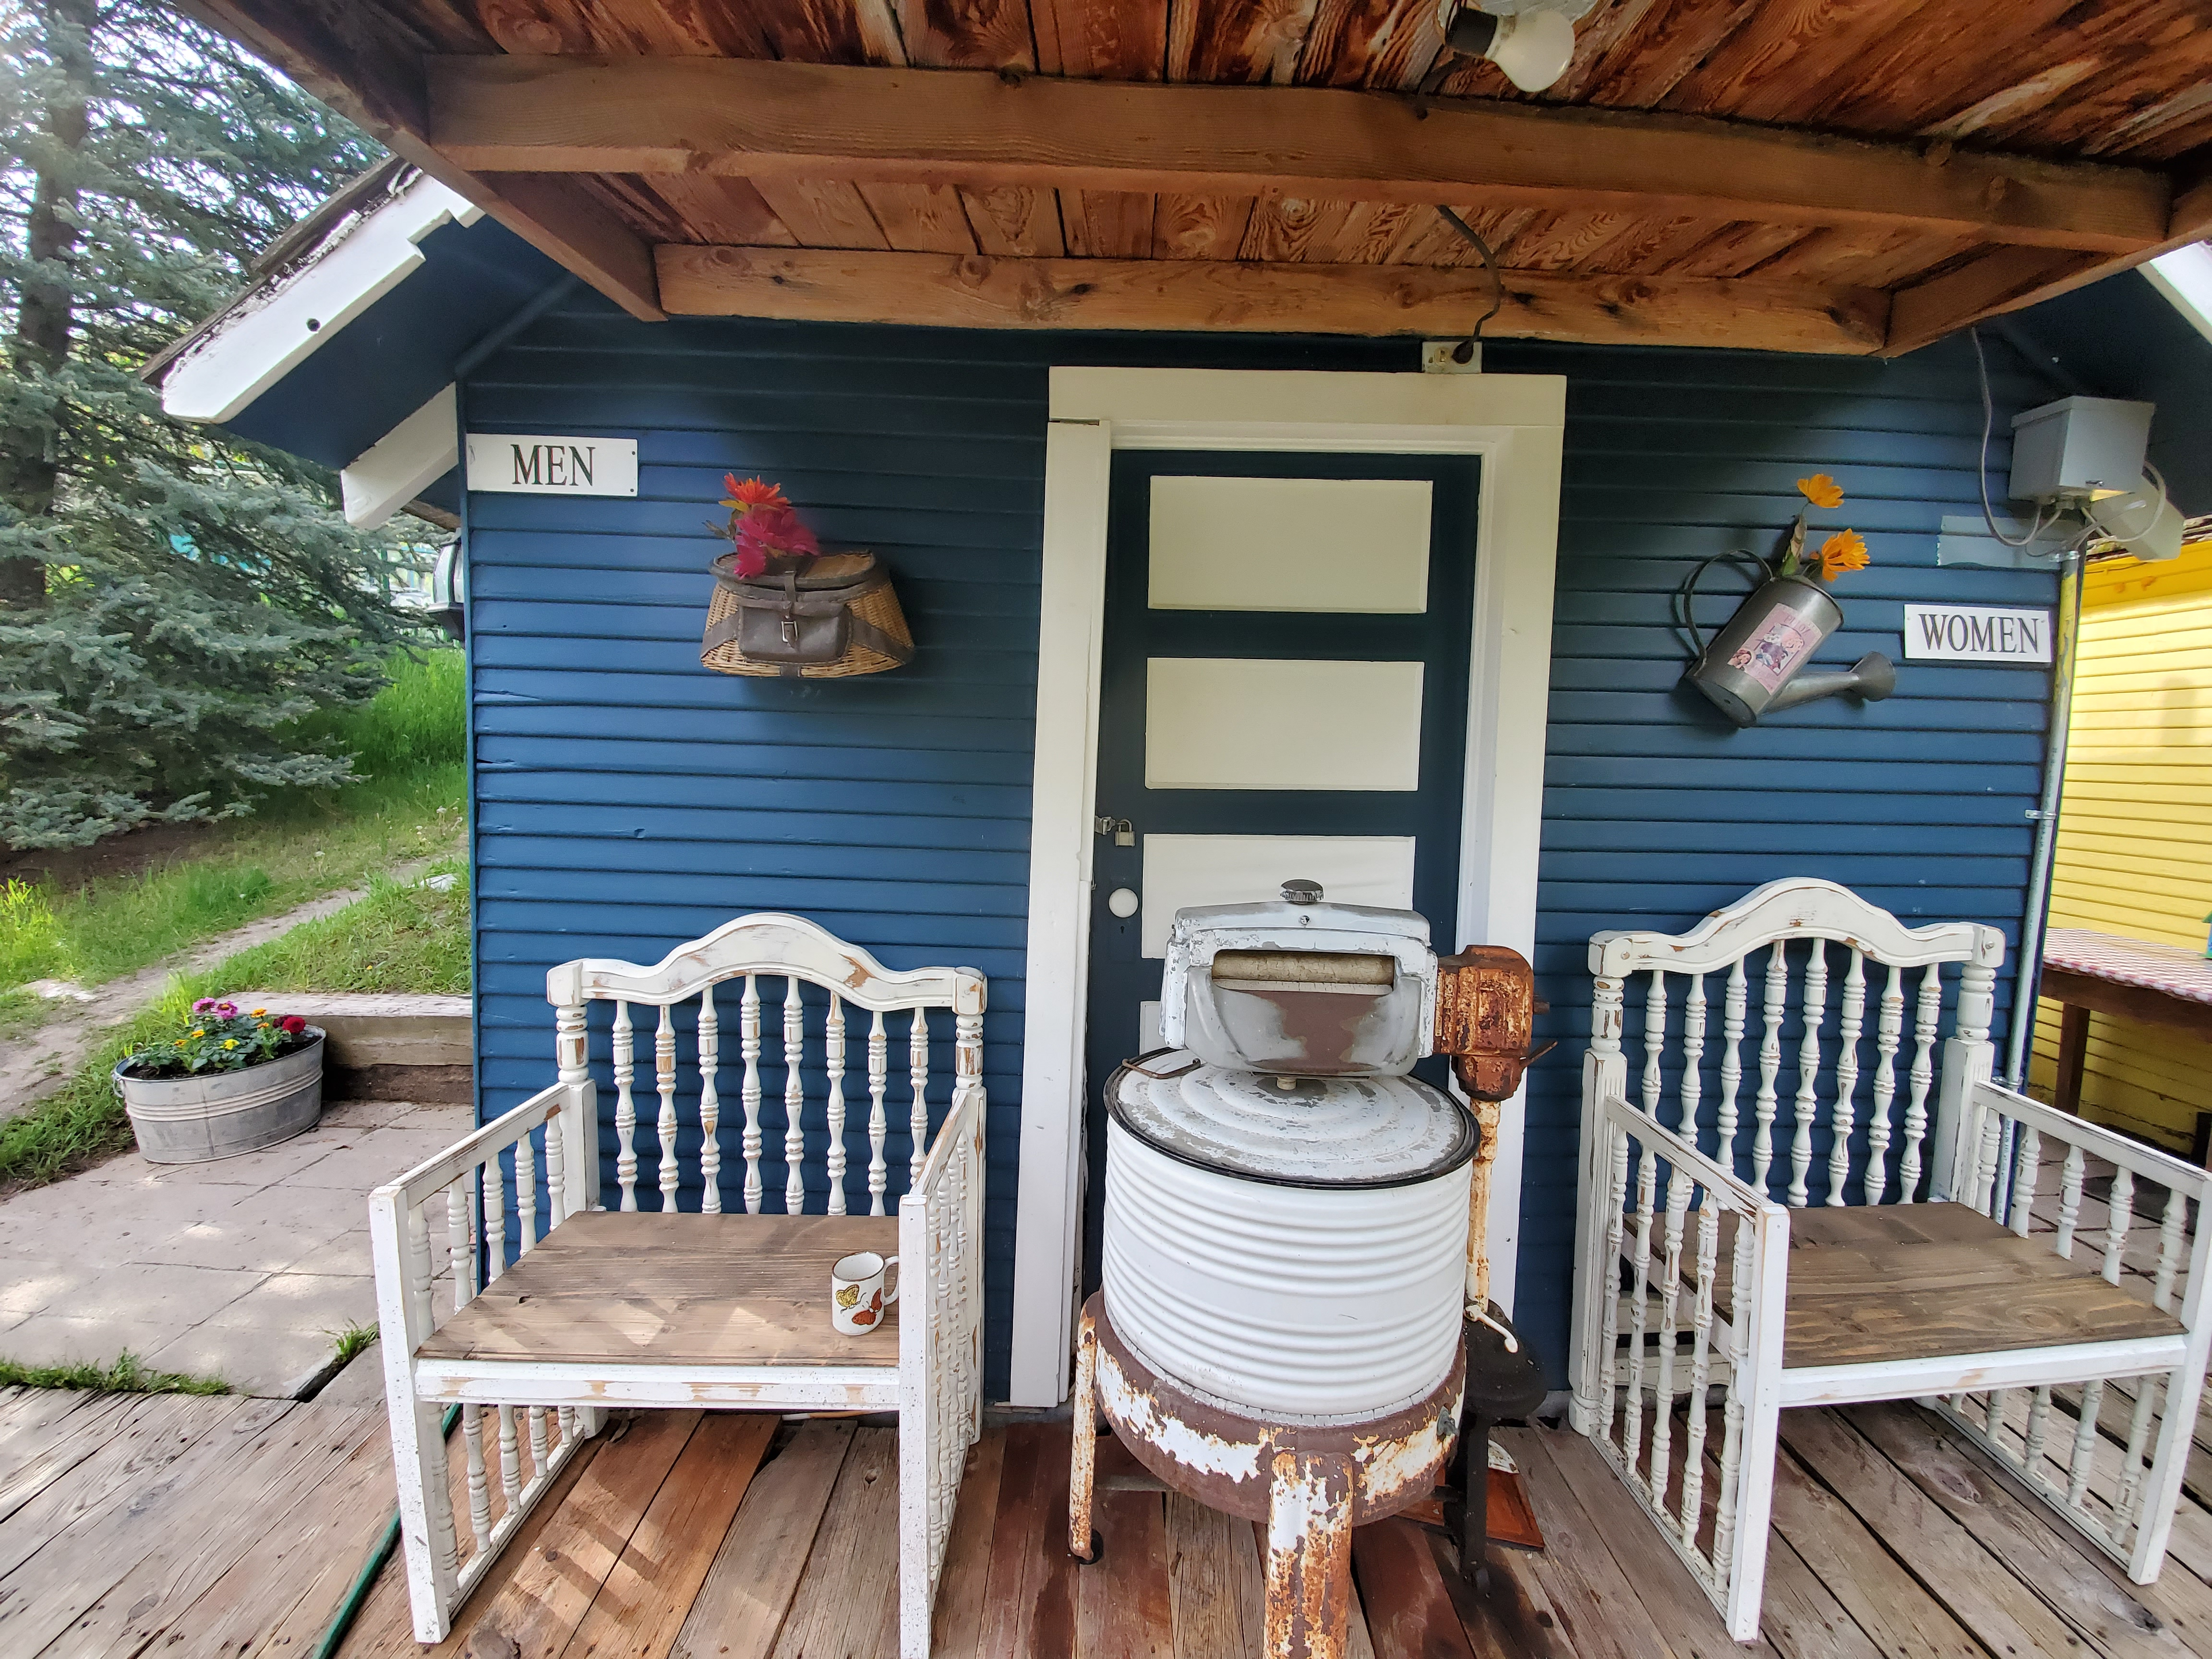 Bristol Cabins – Cabins and Camping in Lava Hot Springs, Idaho